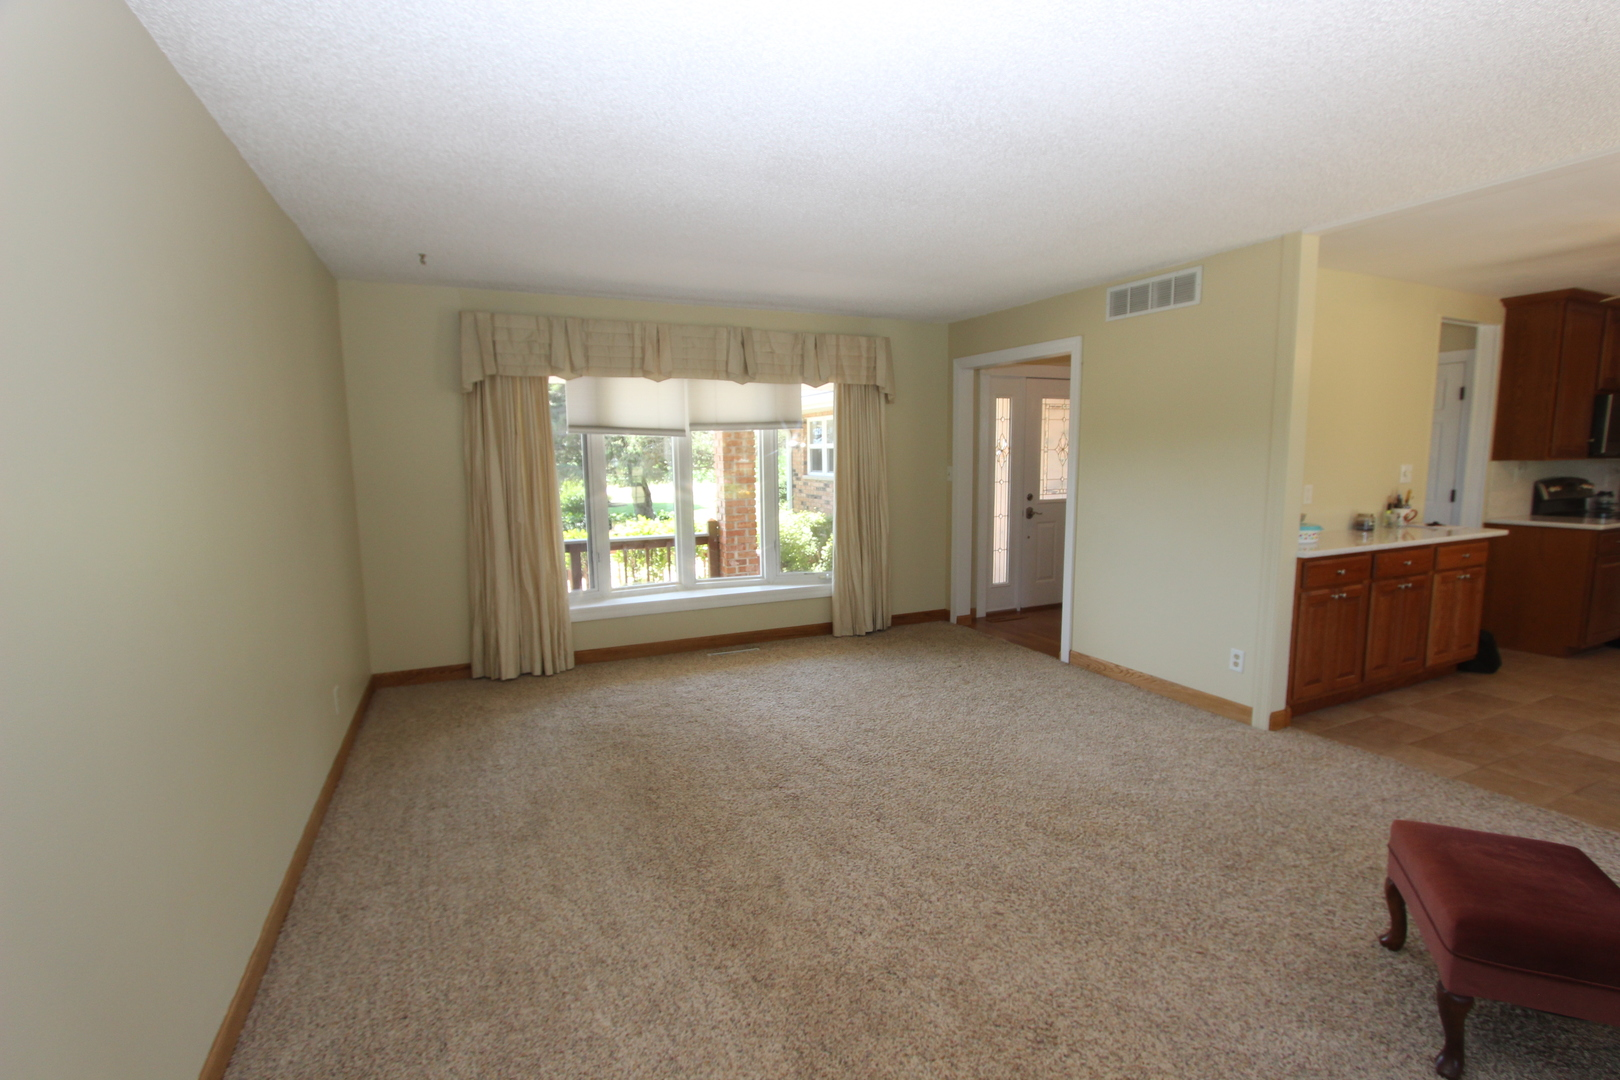 oak grove lesbian singles Mls# 6054790 — this 4 bedroom, 2 bathroom single family for sale is located at 1377 oak grove dr, decatur, ga 30033 view 38 photos, price history and more on bhgrecom.